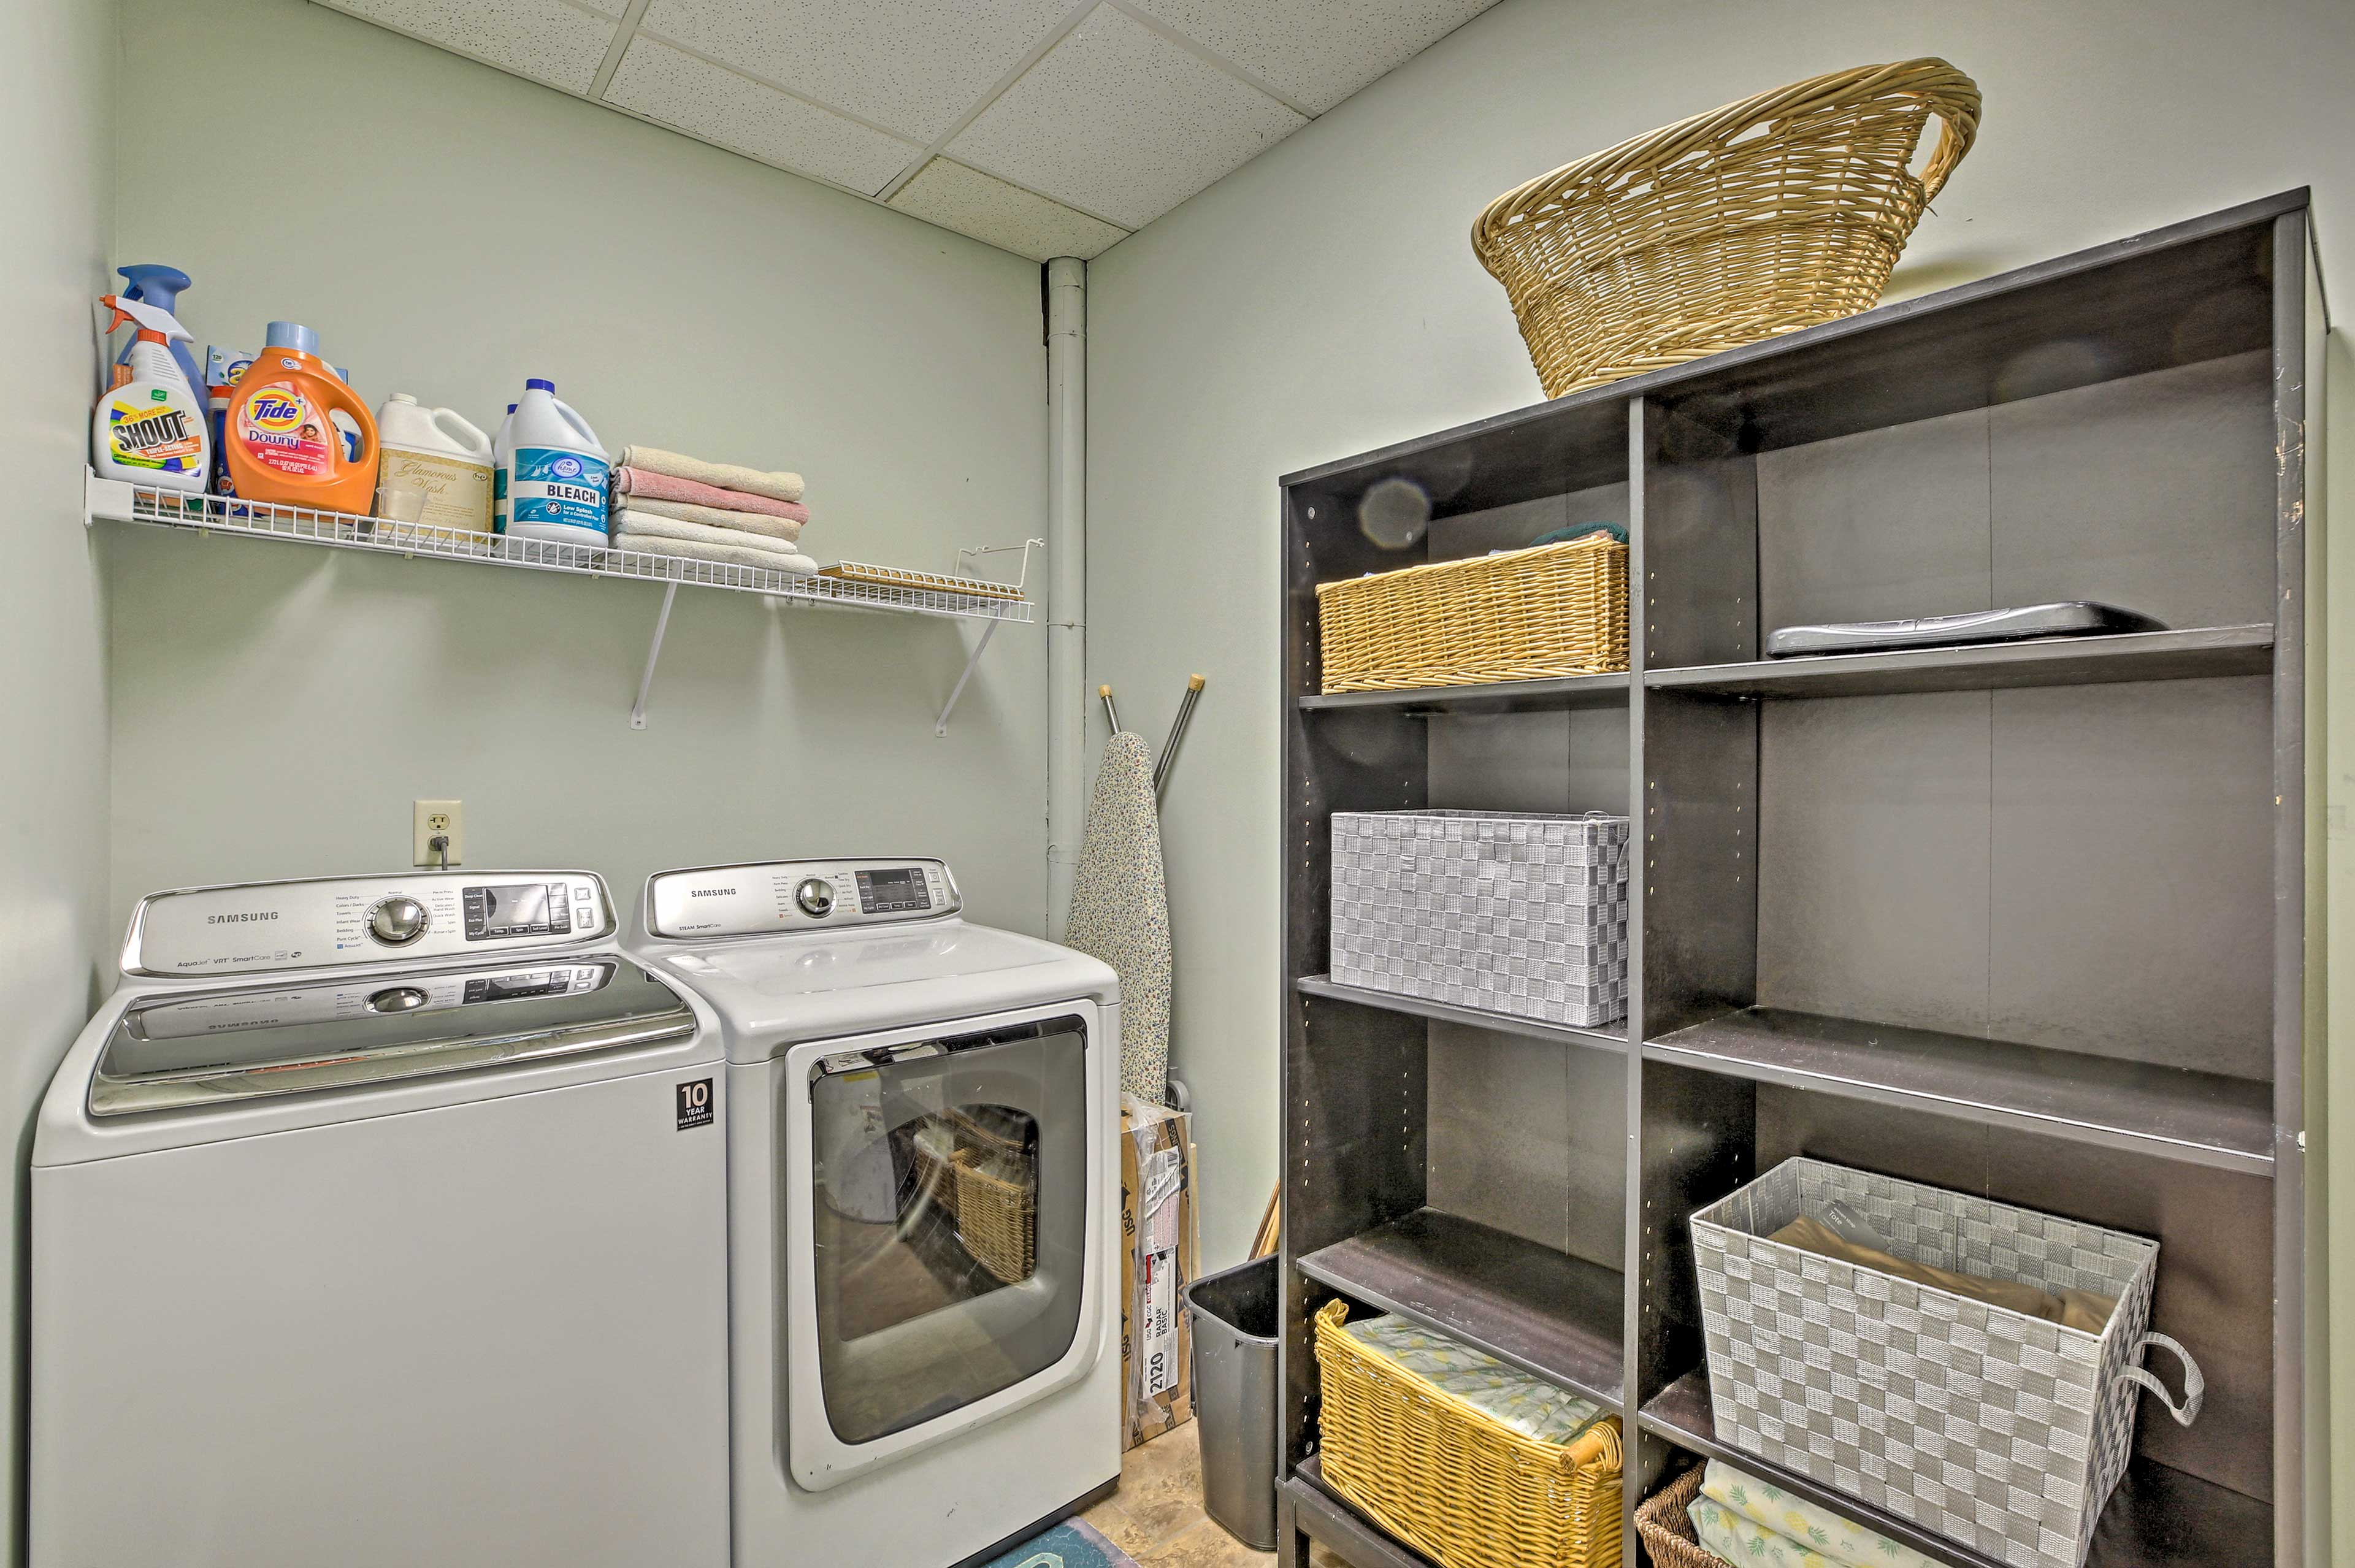 Take care of your clothes by using the convenient washer and dryer machine.